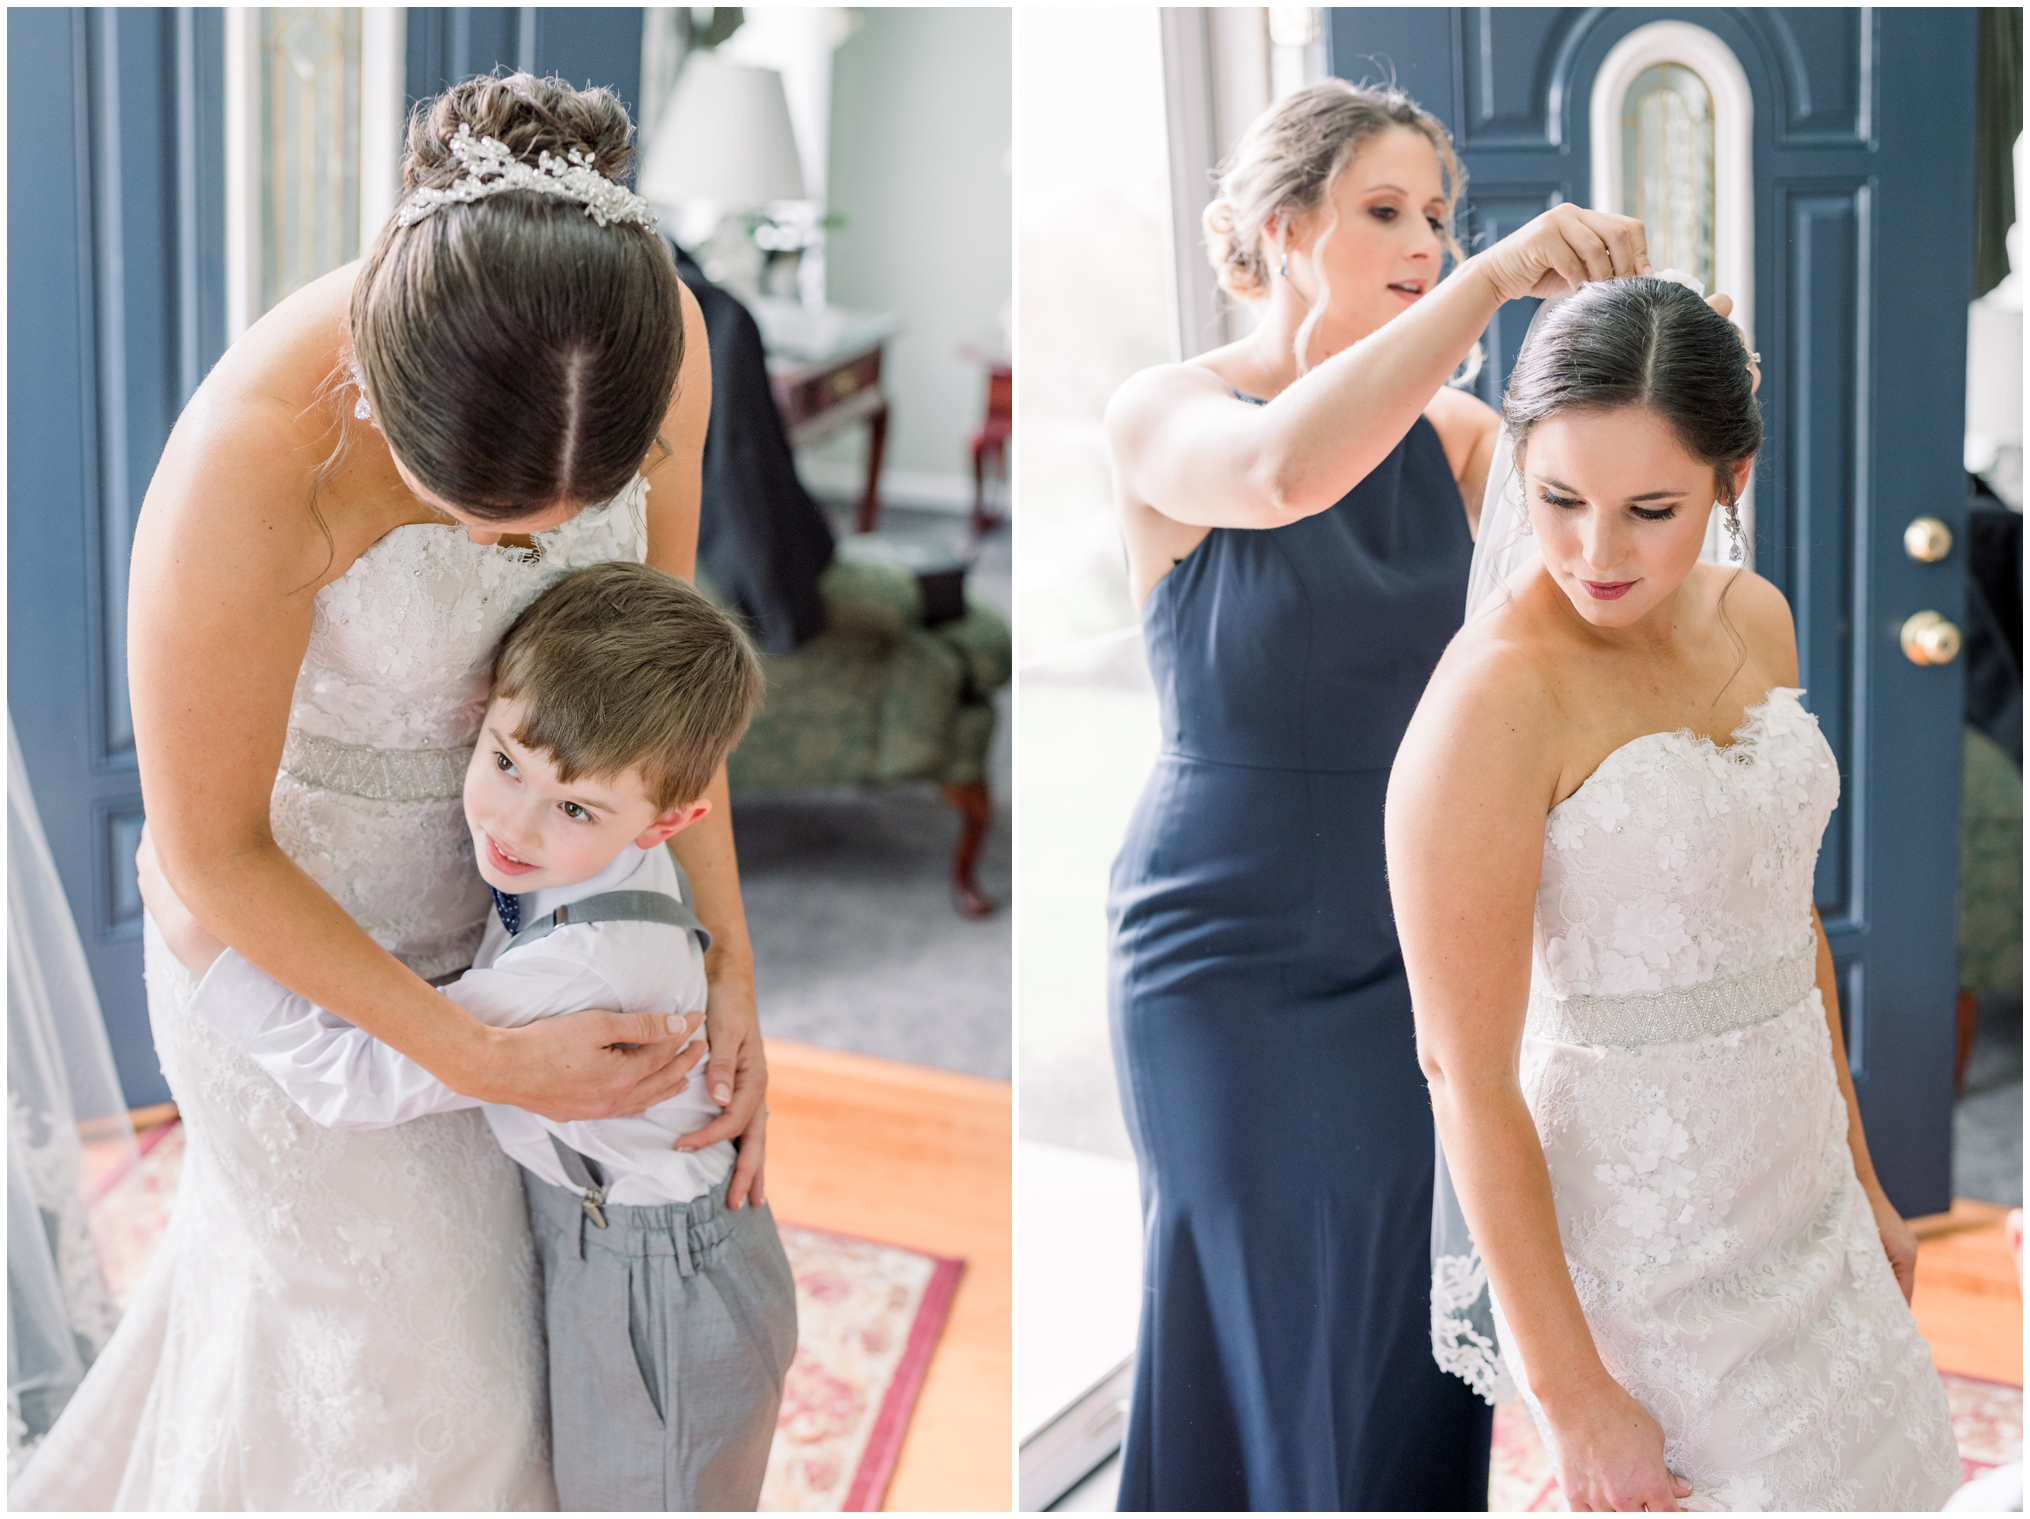 Krista Brackin Photography | April Wedding at The Carriage House at Rockwood Park_0018.jpg